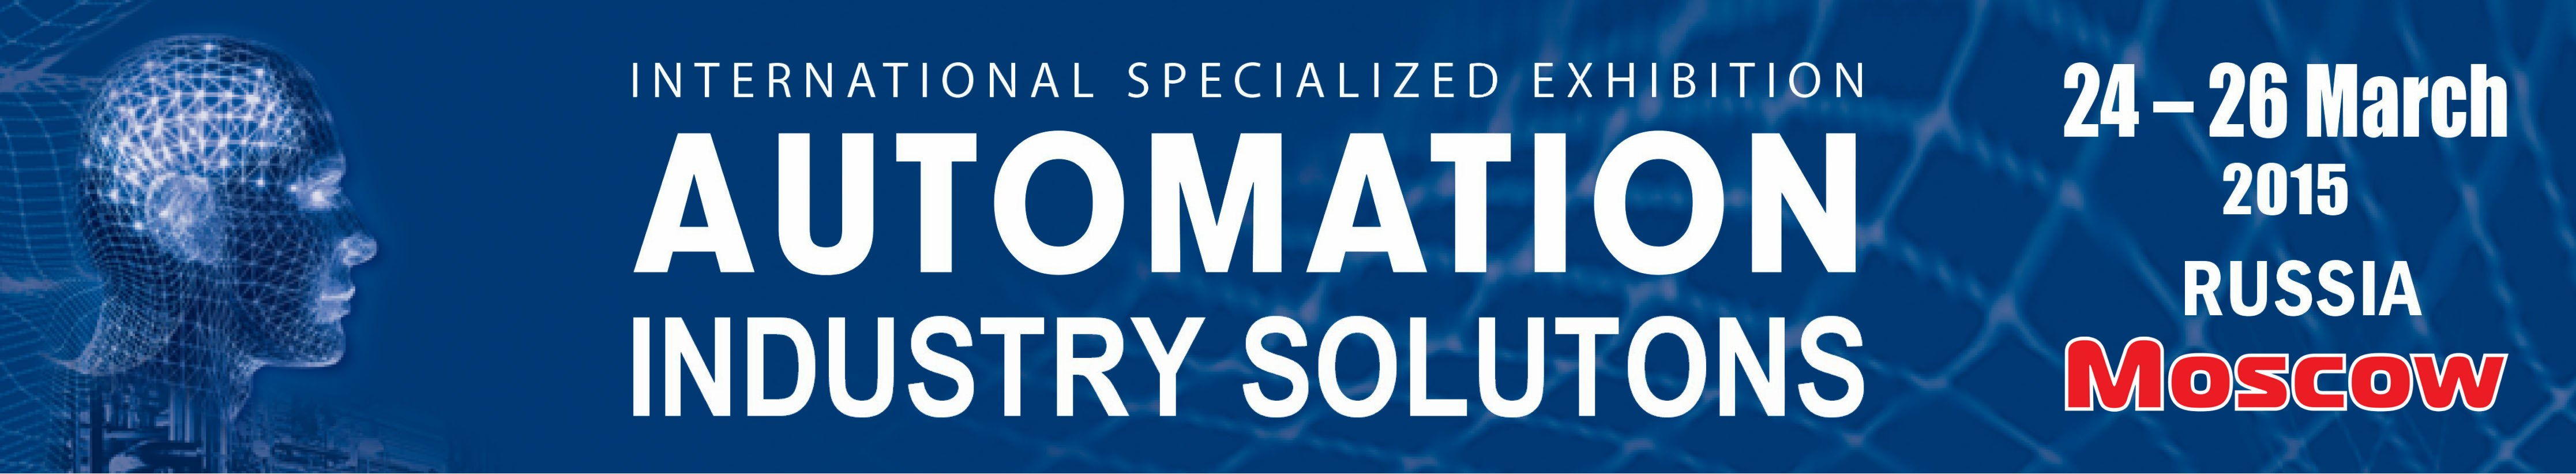 AUTOMATION. INDUSTRY SOLUTIONS